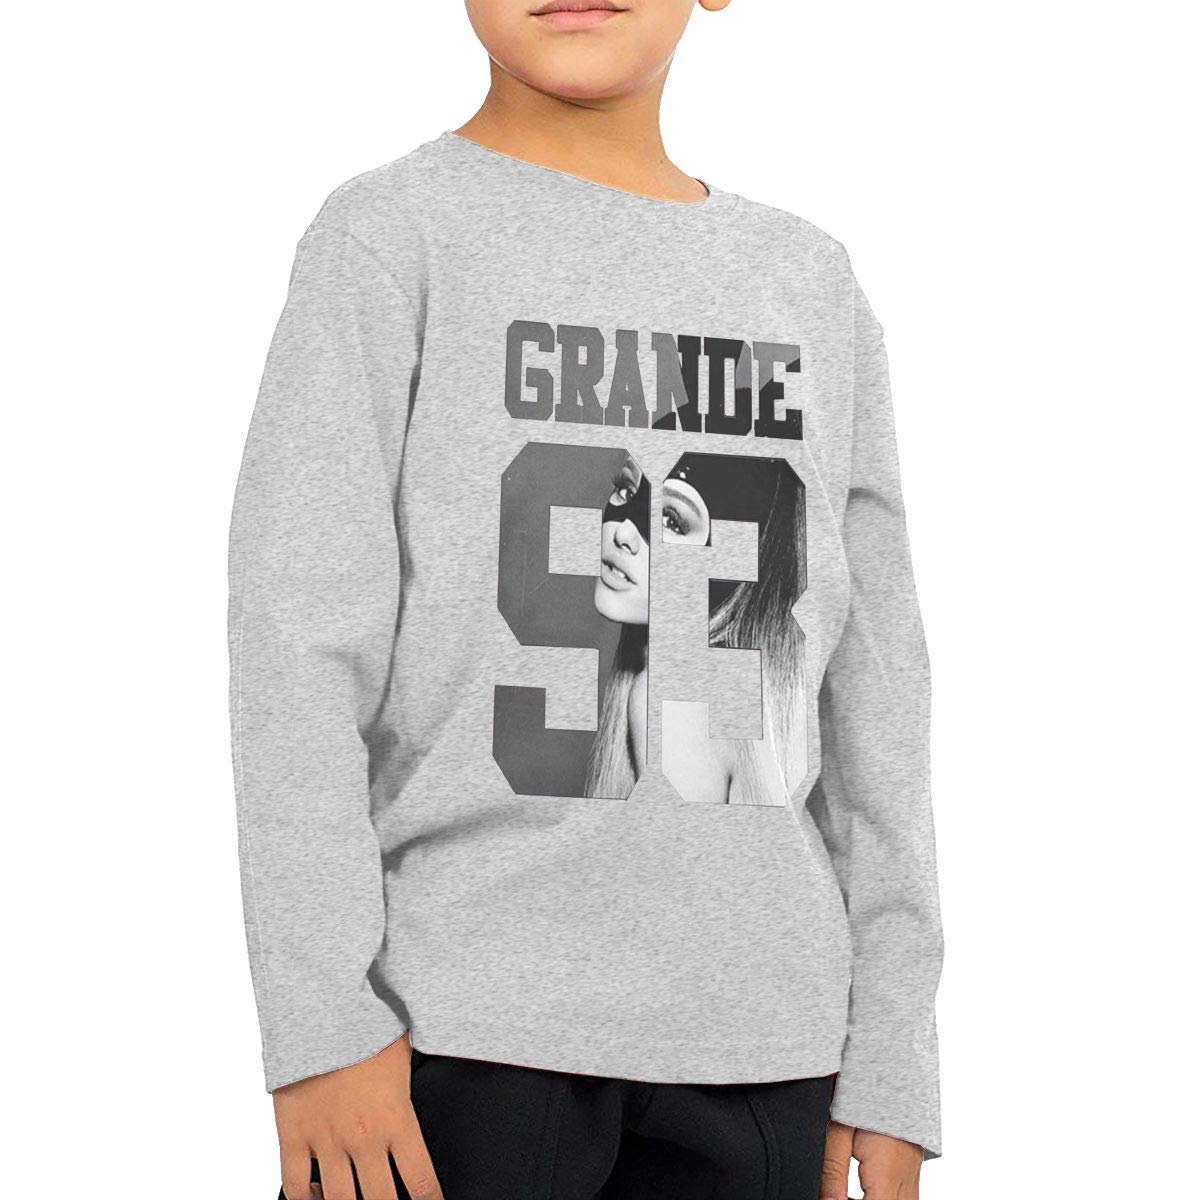 2-6 Year Old Childrens Long Sleeve T-Shirt Vintage Unique Long Sleeve T Ariana Singer Grande Logo Gray